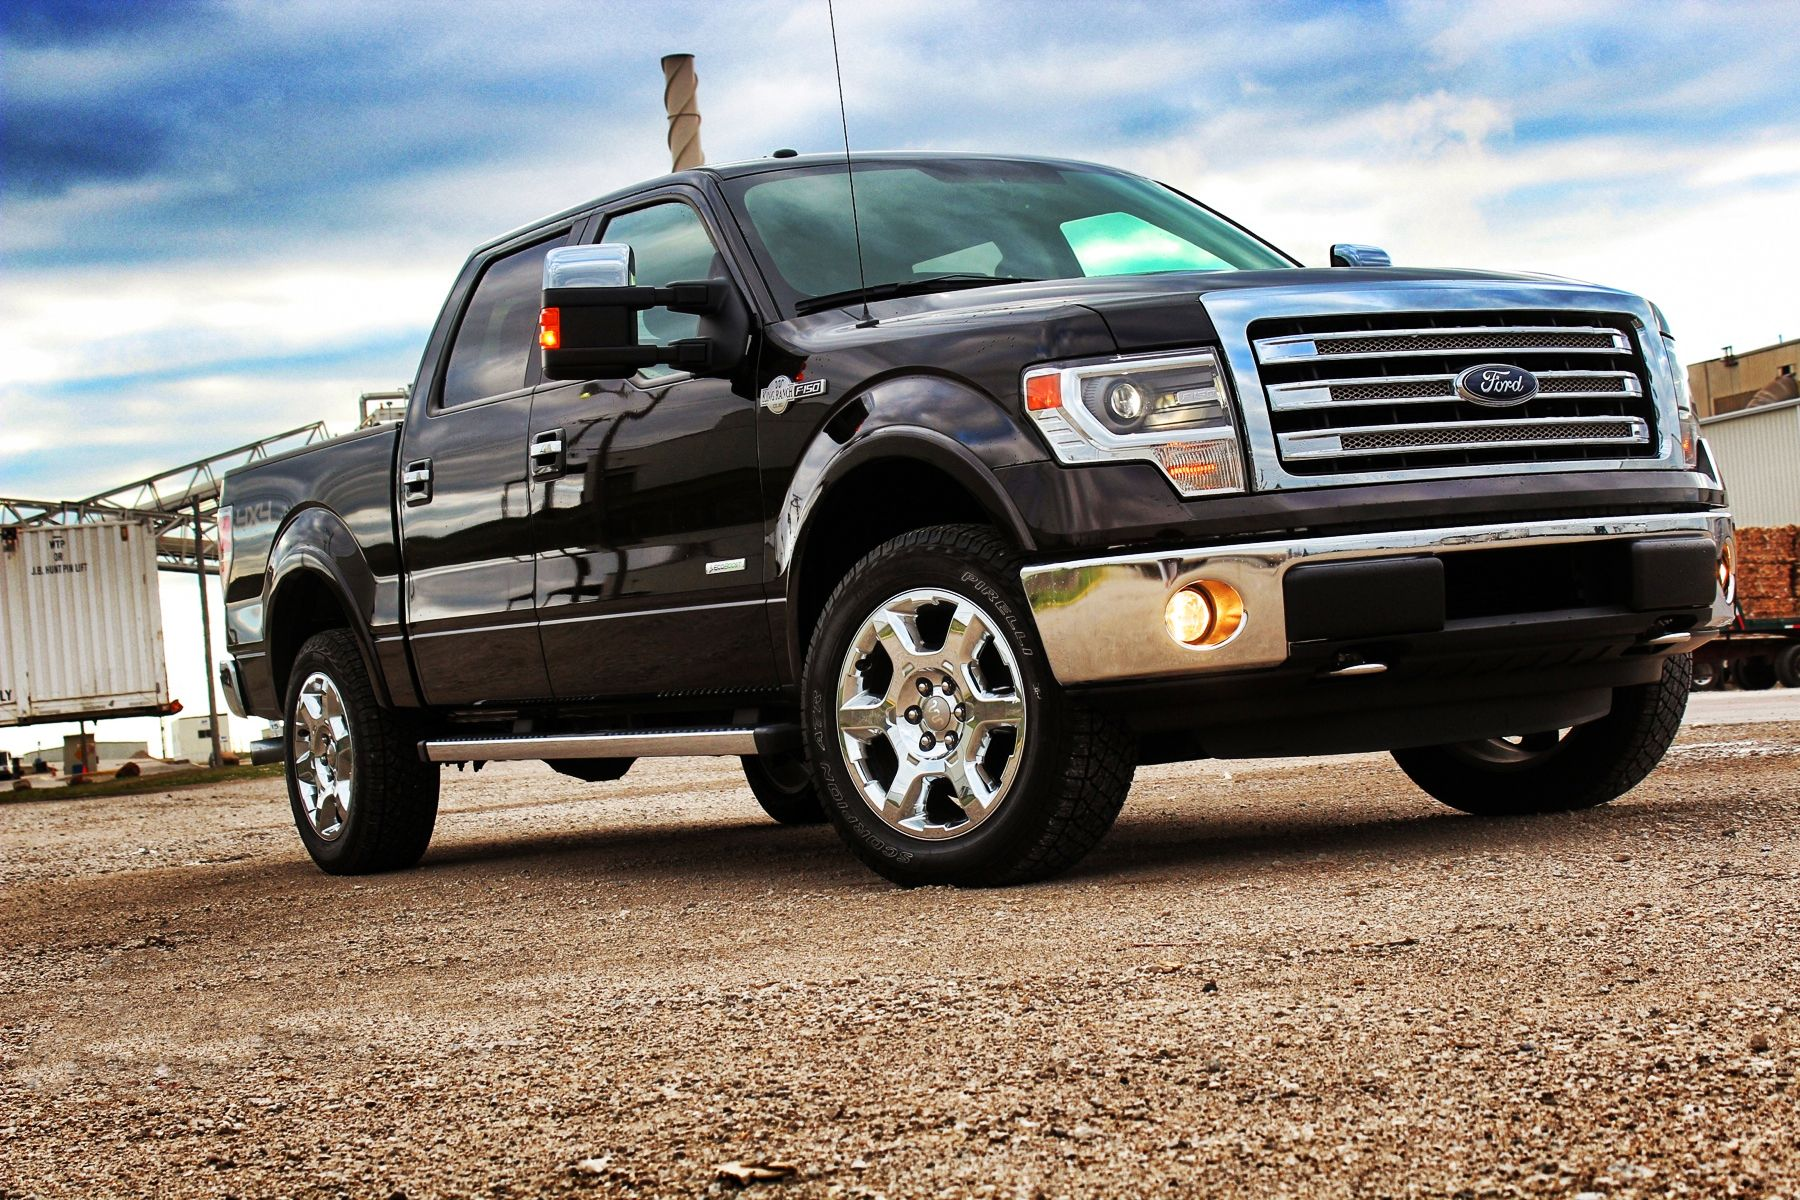 The 2014 ford f series is americas best selling truck for 37 years